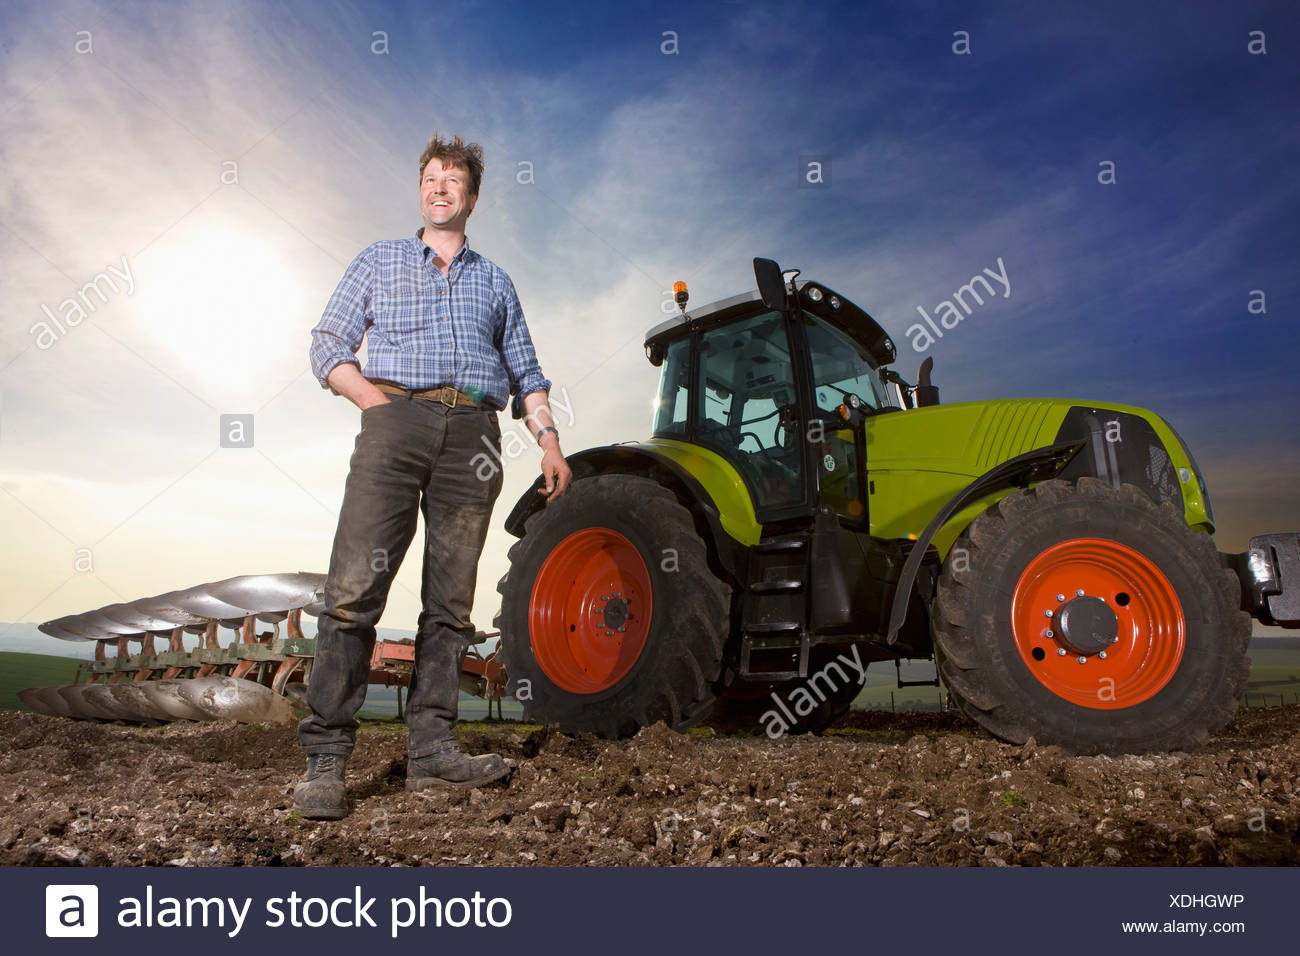 Smiling farmer standing in front of tractor and plough in field - Stock Image